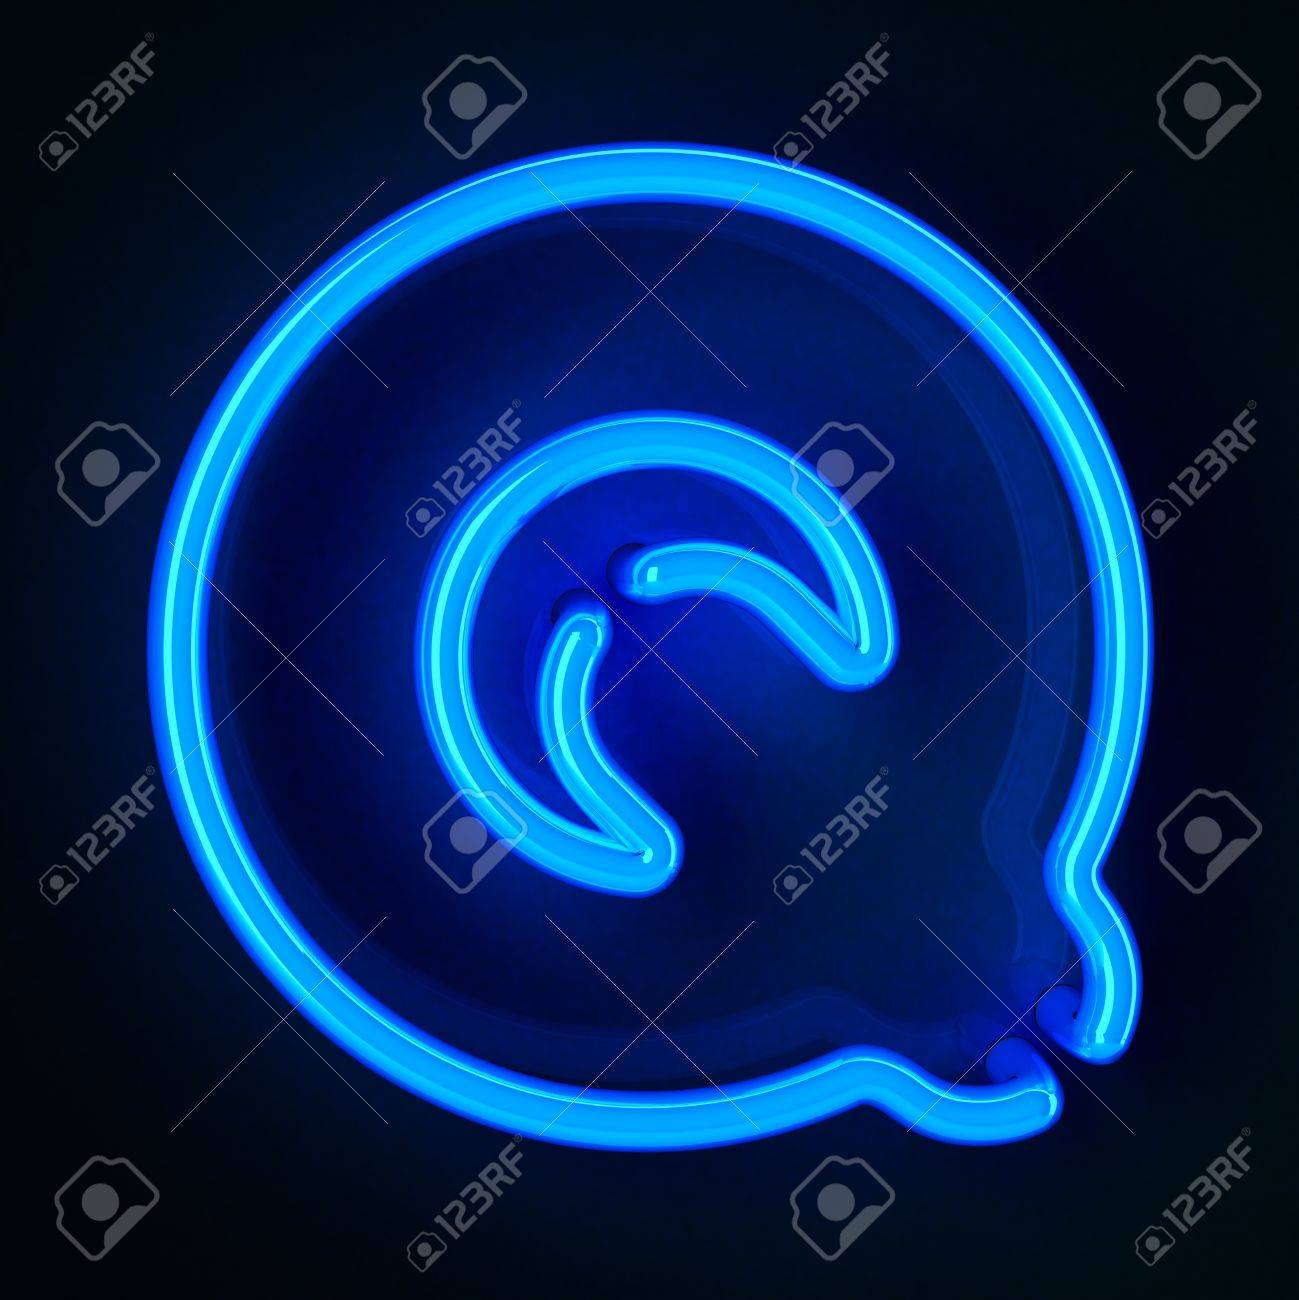 Highly detailed neon sign with the letter Q Stock Photo - 12179449